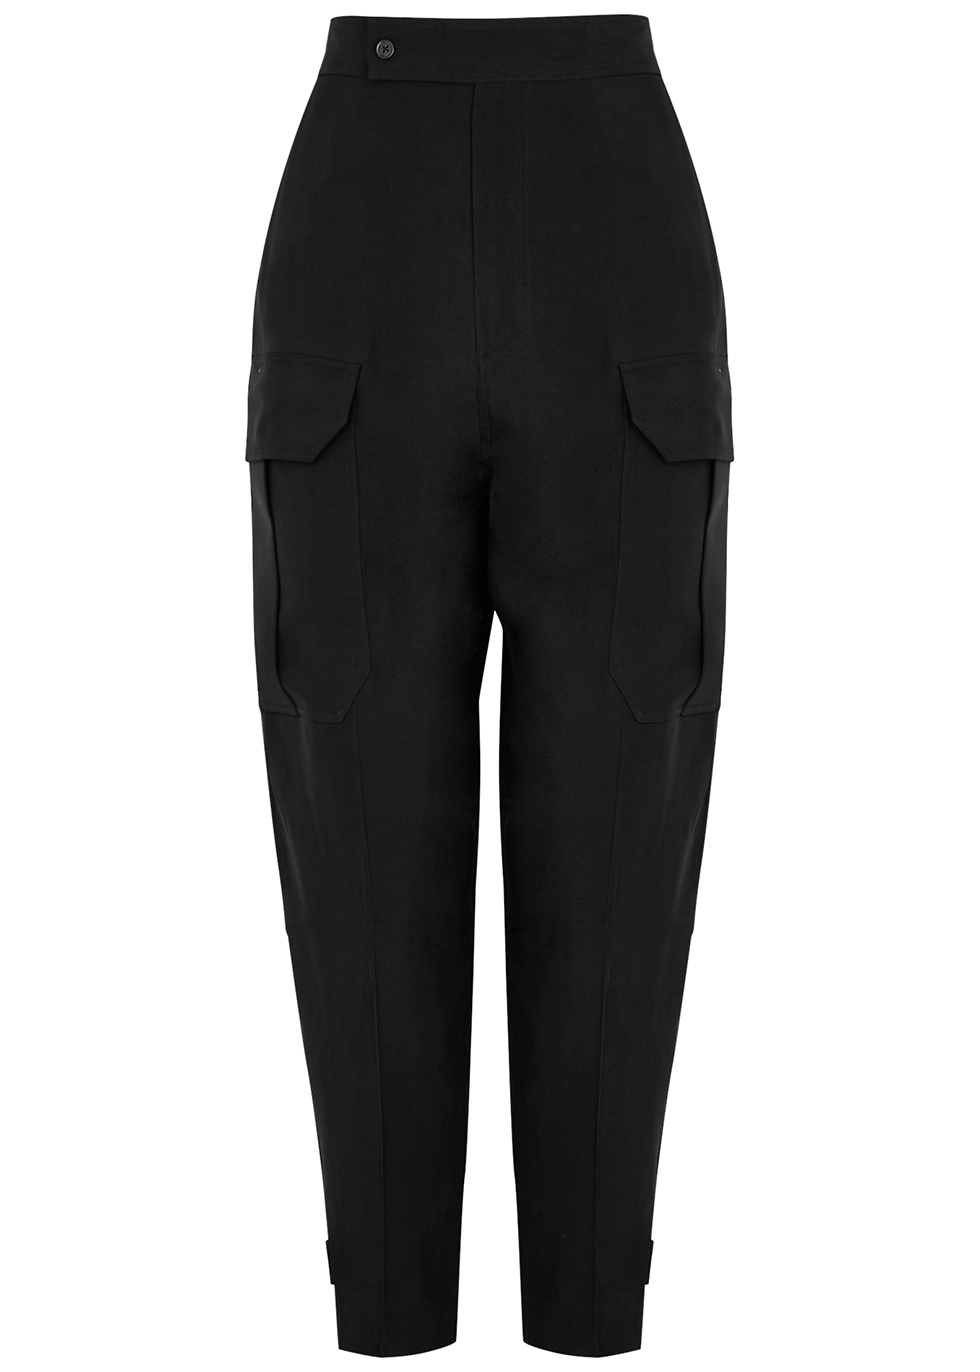 Agadire black satin-twill cargo trousers